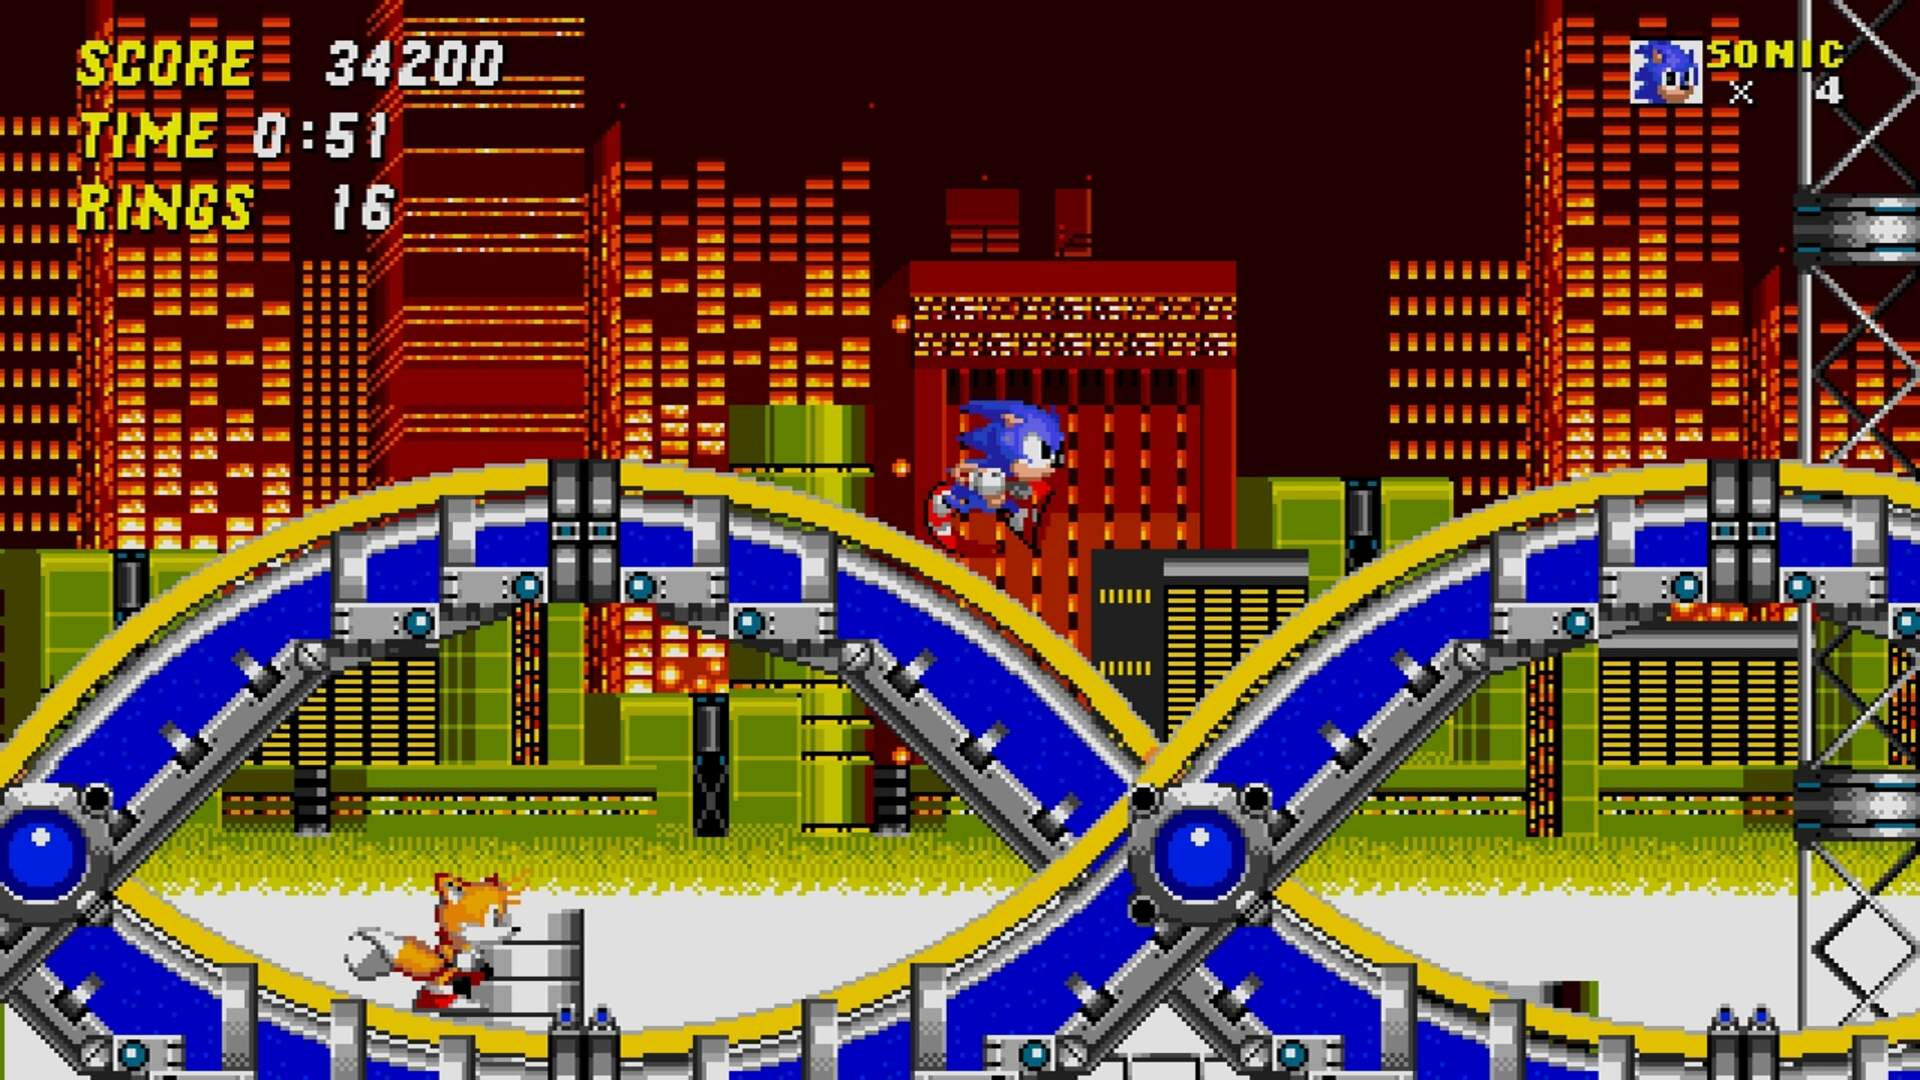 Sega Genesis Mini Lineup Looking Stronger by the Day as Another 10 Games are Added